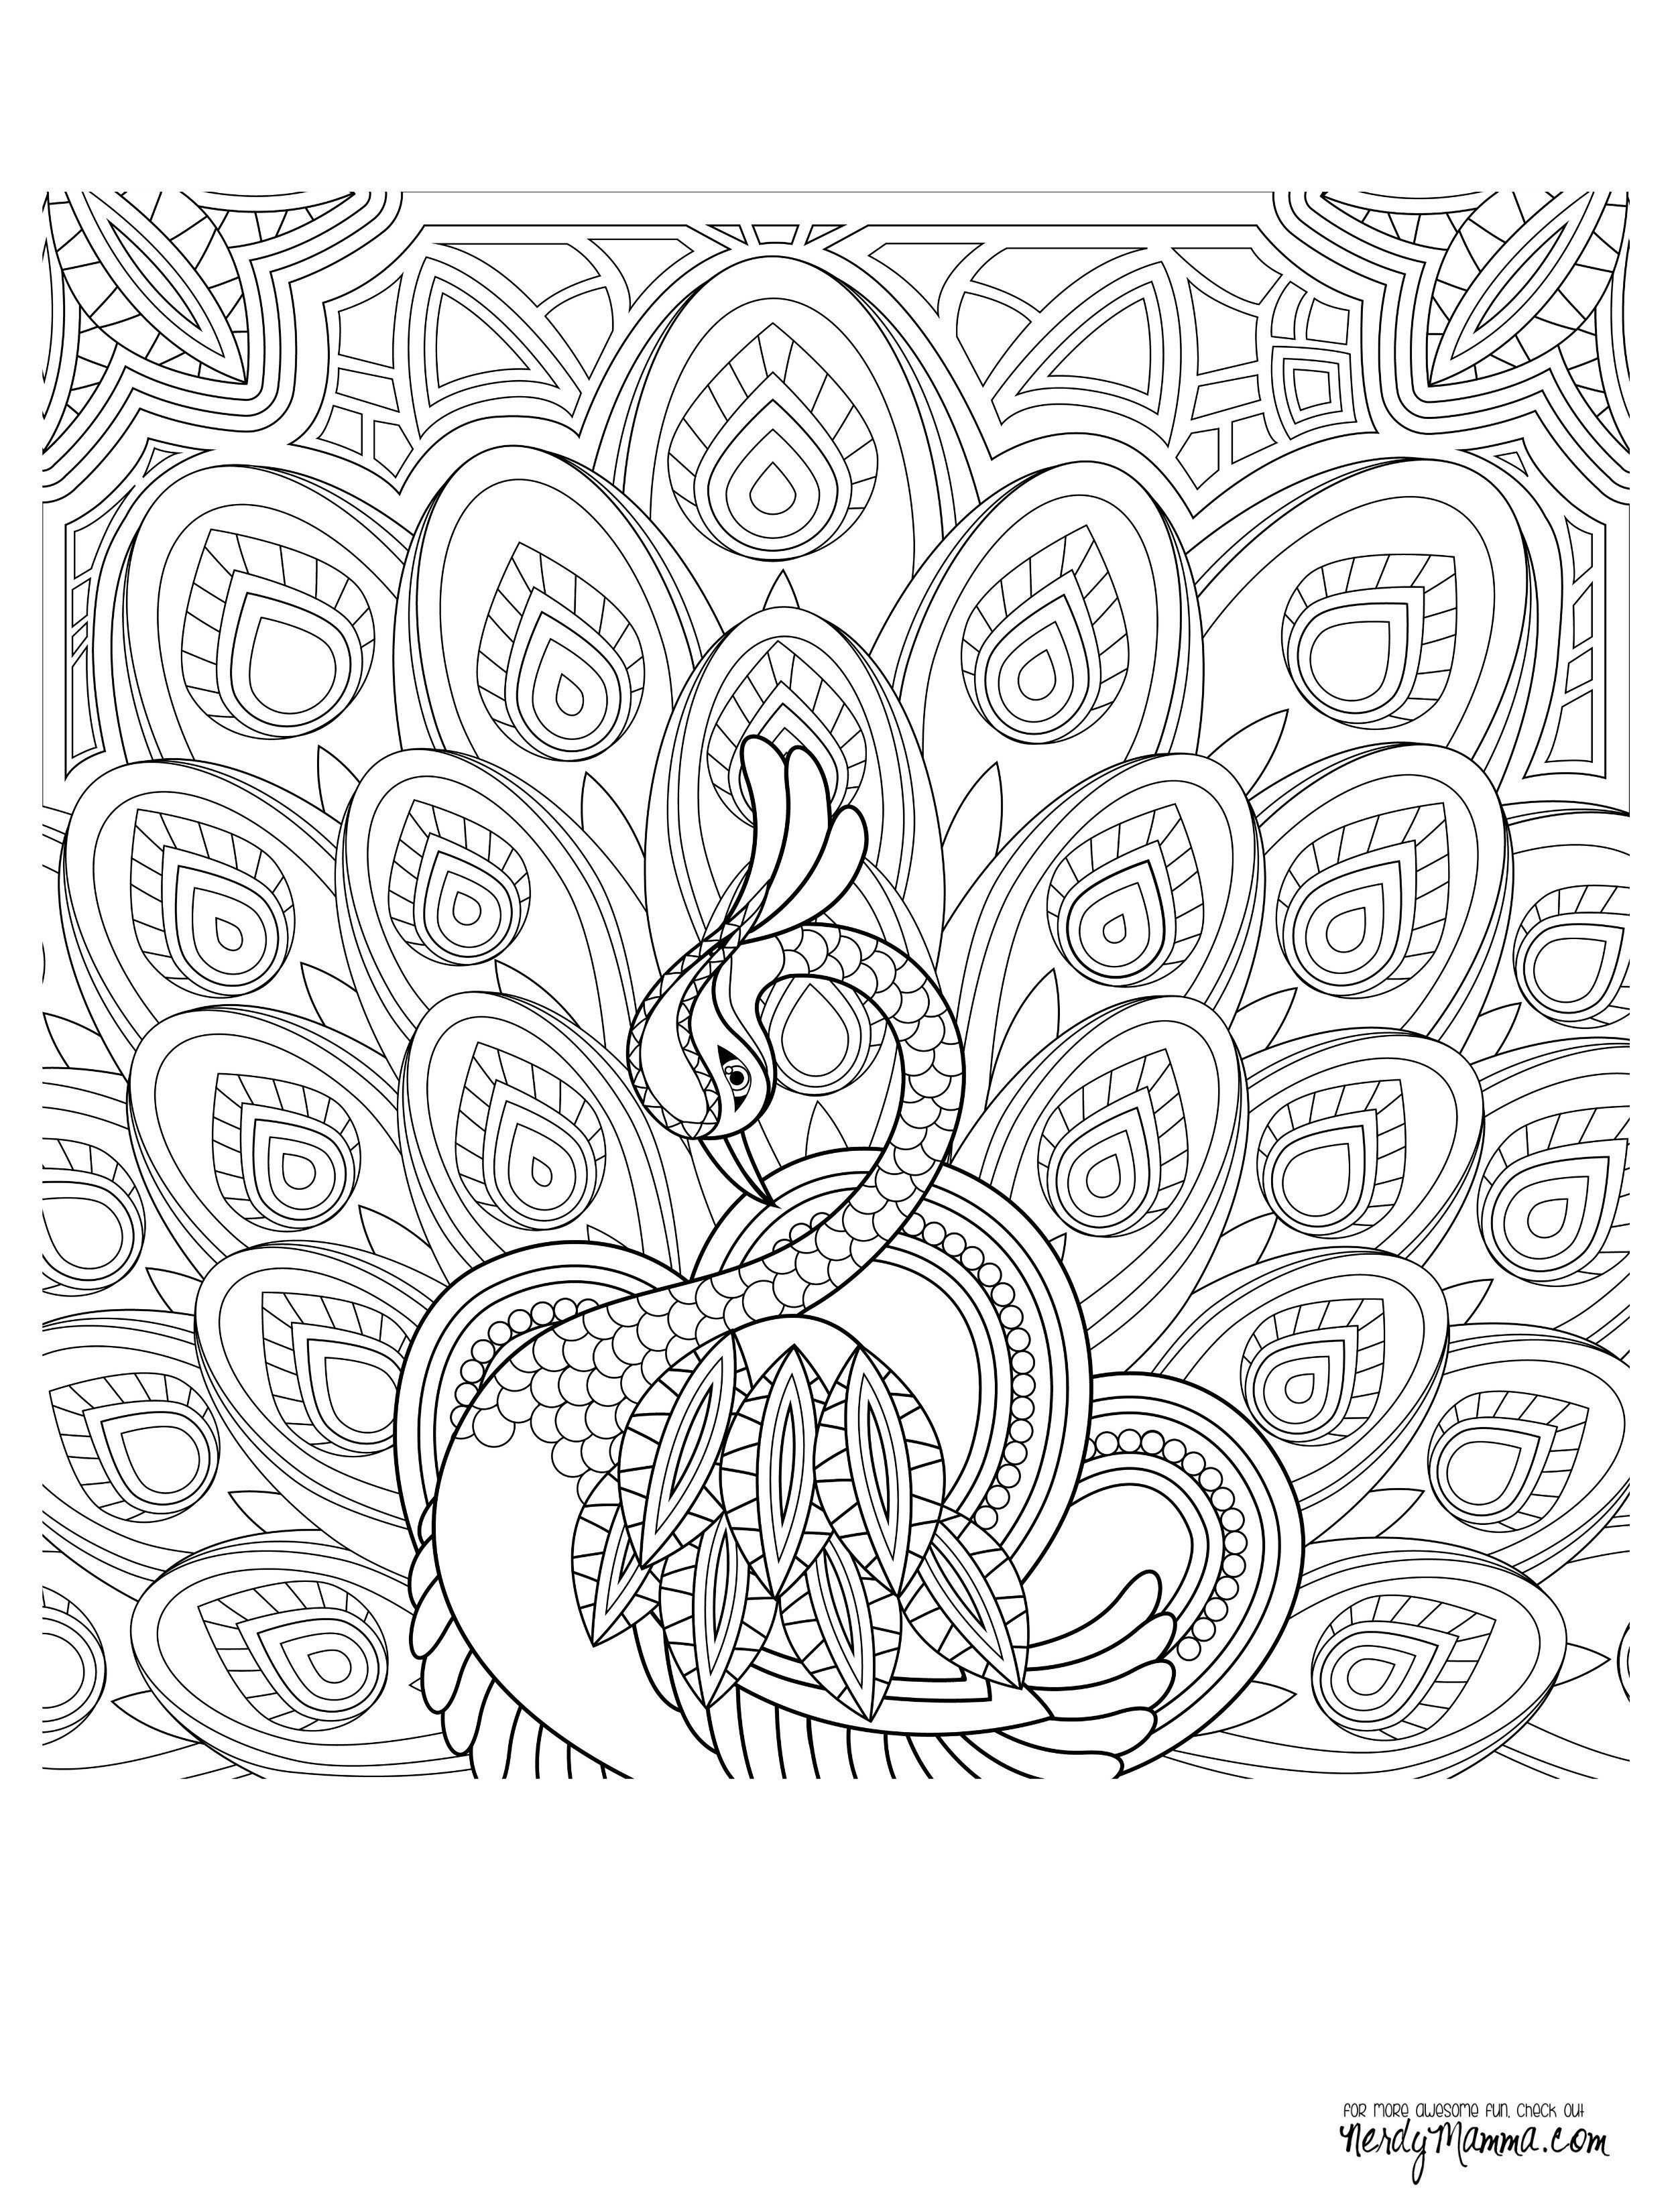 R kelly coloring pages - Peacock Adult Coloring Page More